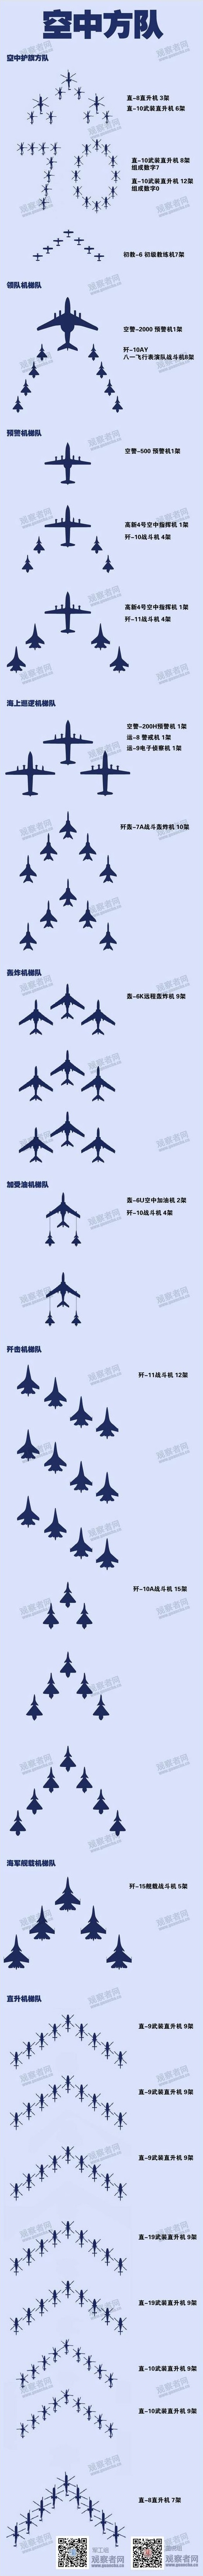 PLA-air-victory-parade.jpg